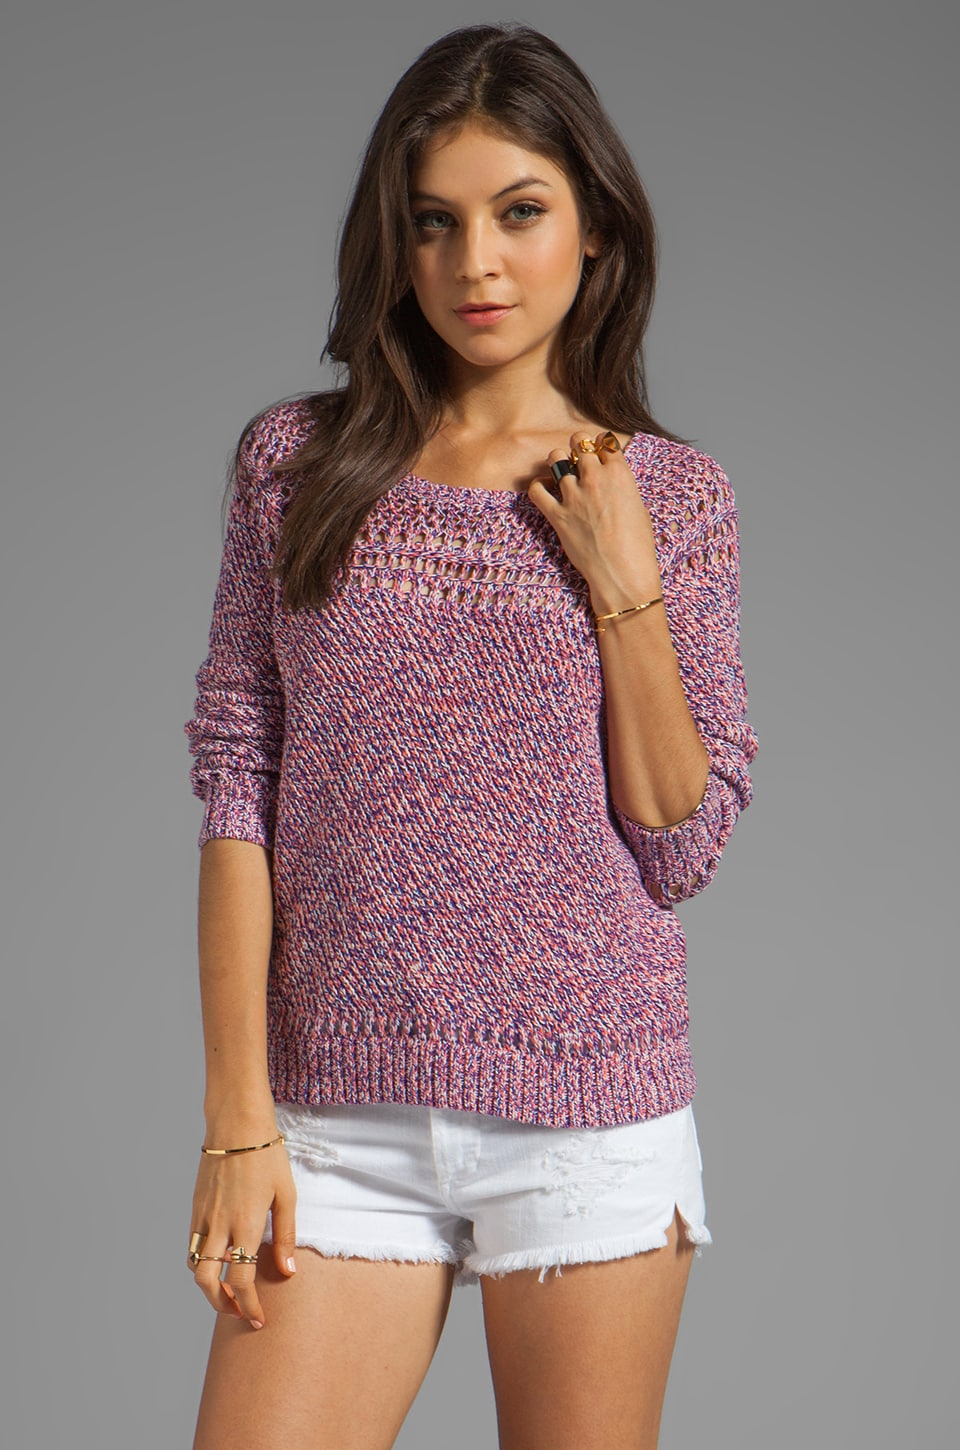 MILLY April Knits Claudia Melange Pullover in Multi